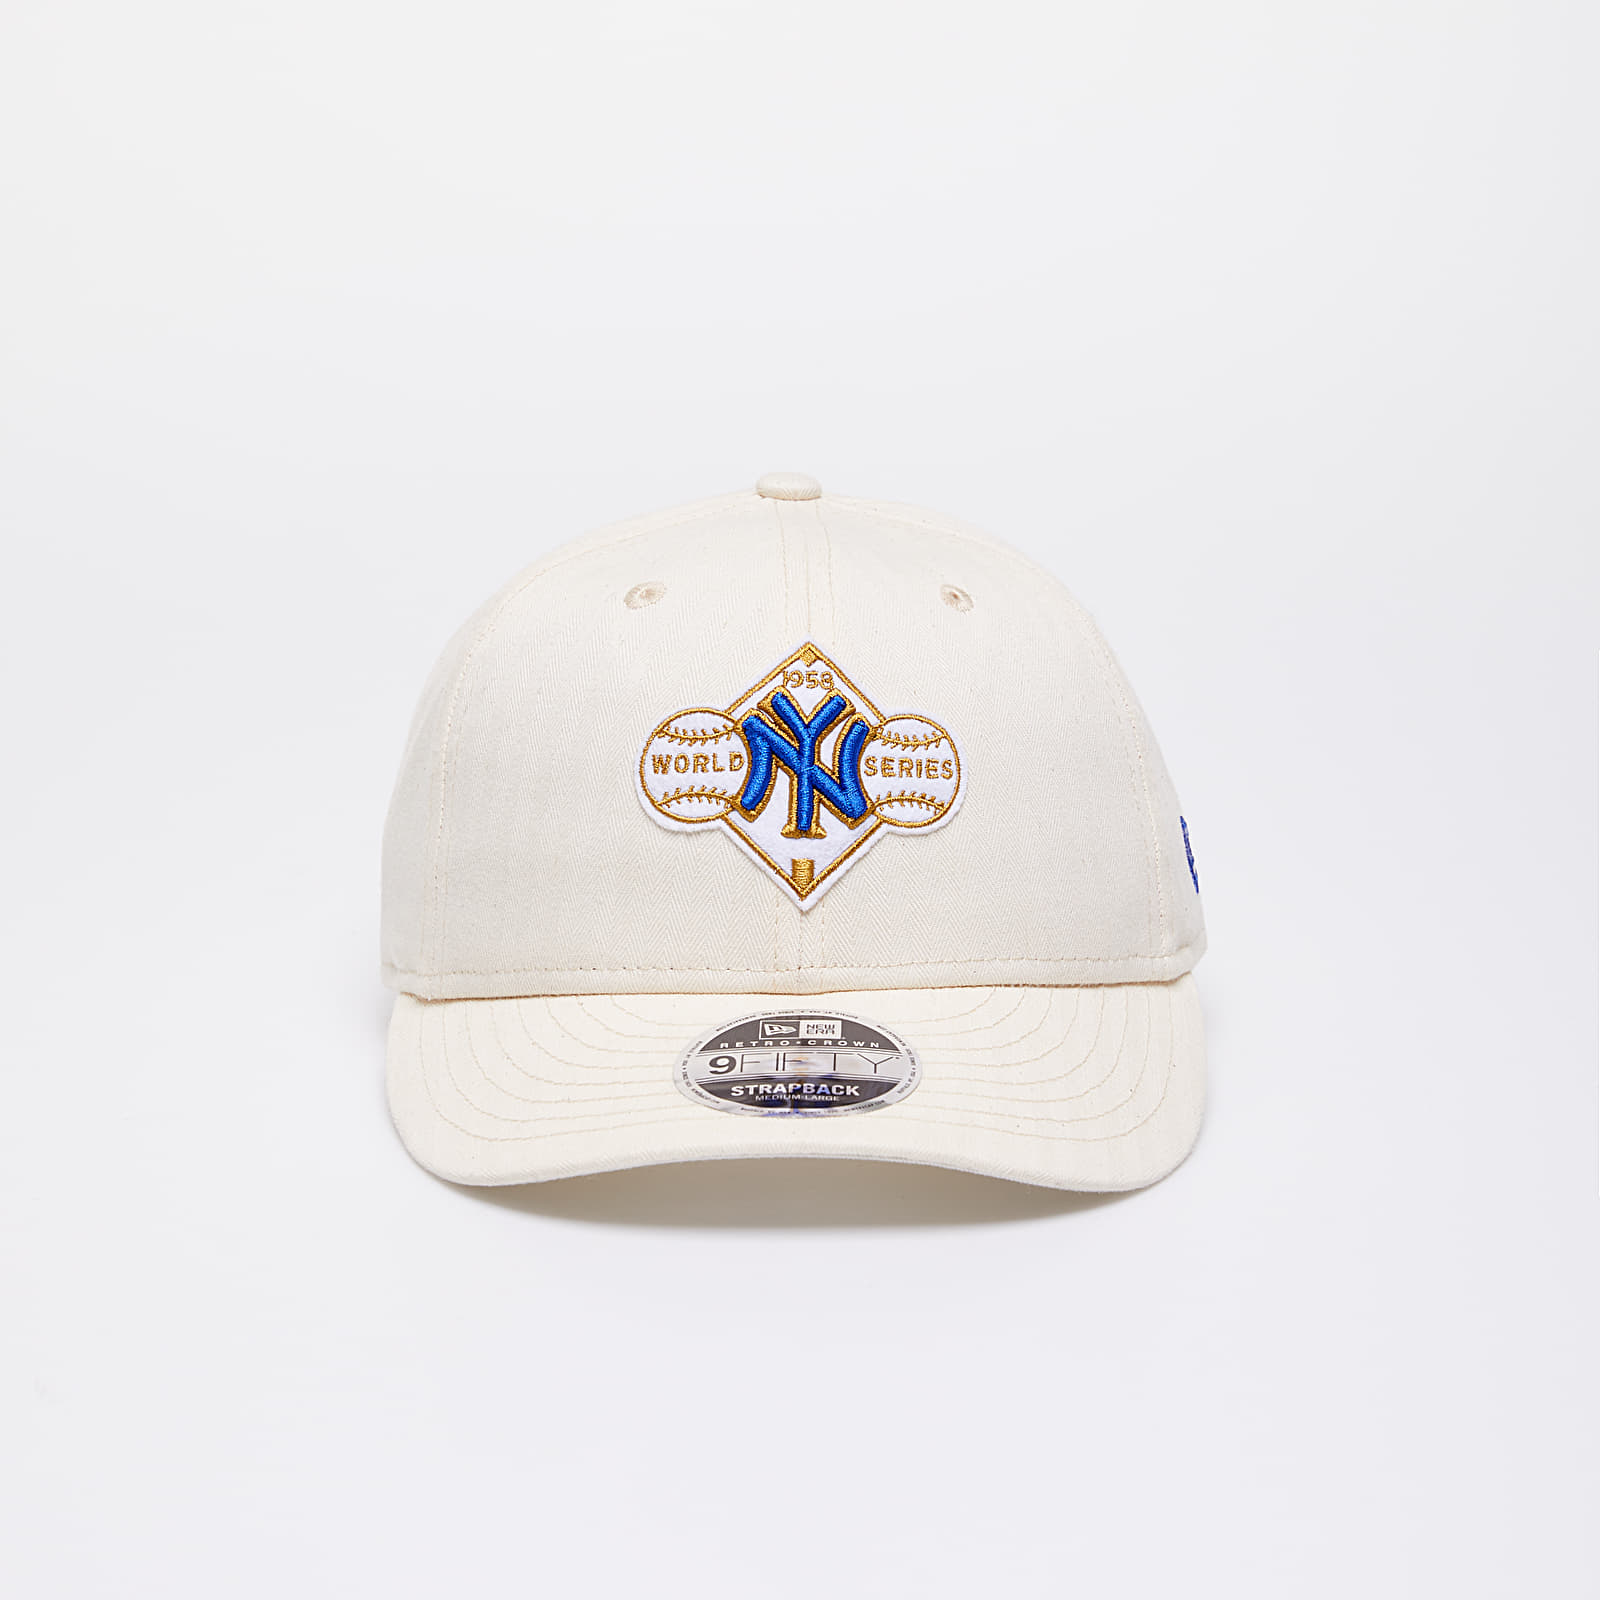 Kšiltovky New Era 9Fifty MLB Cooperstown New York Yankees Hat Cream